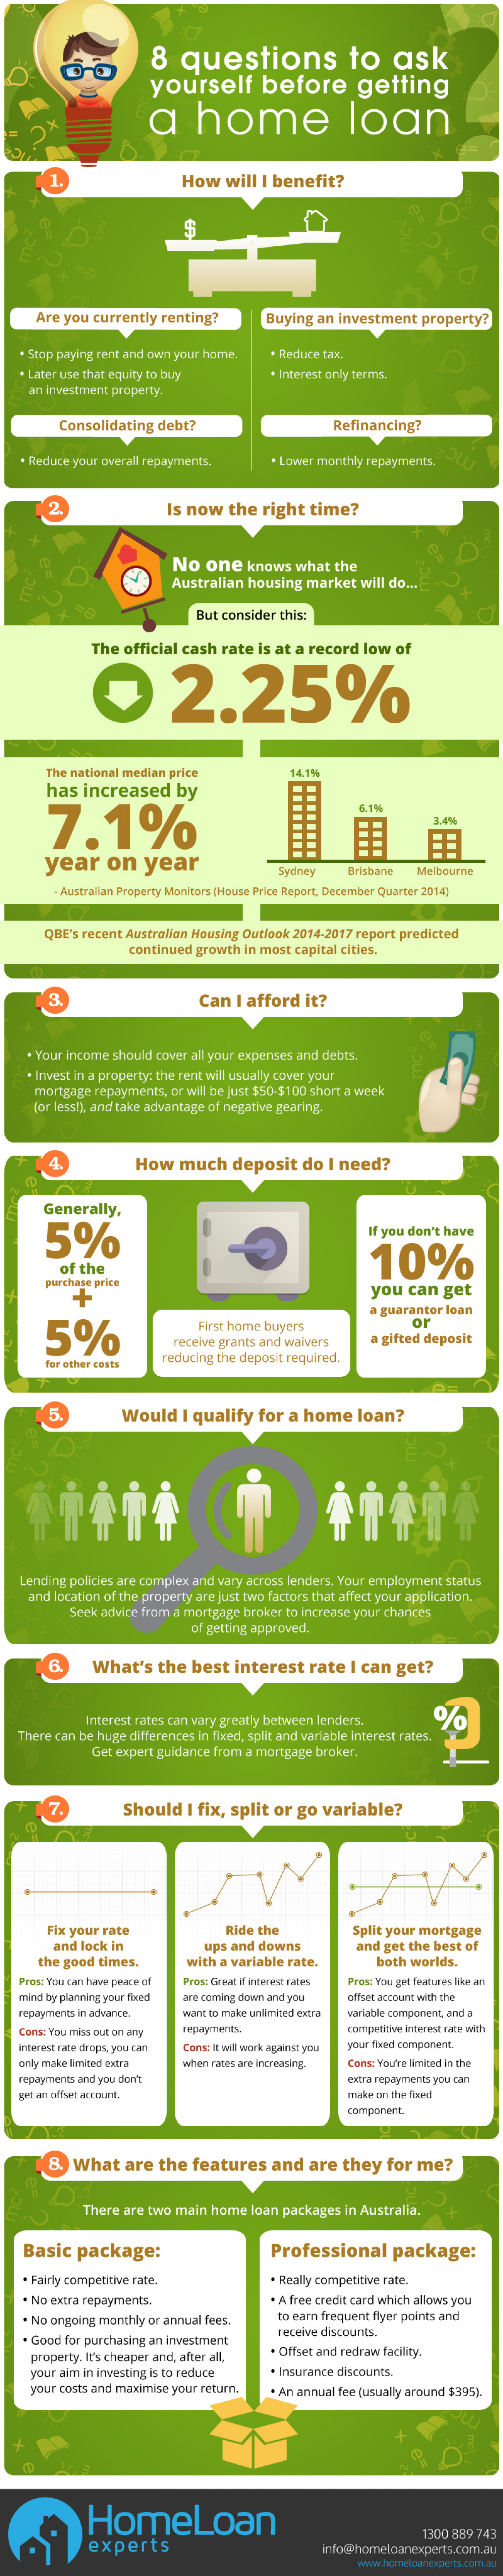 8 Questions To Ask Yourself When Looking For A Home Loan